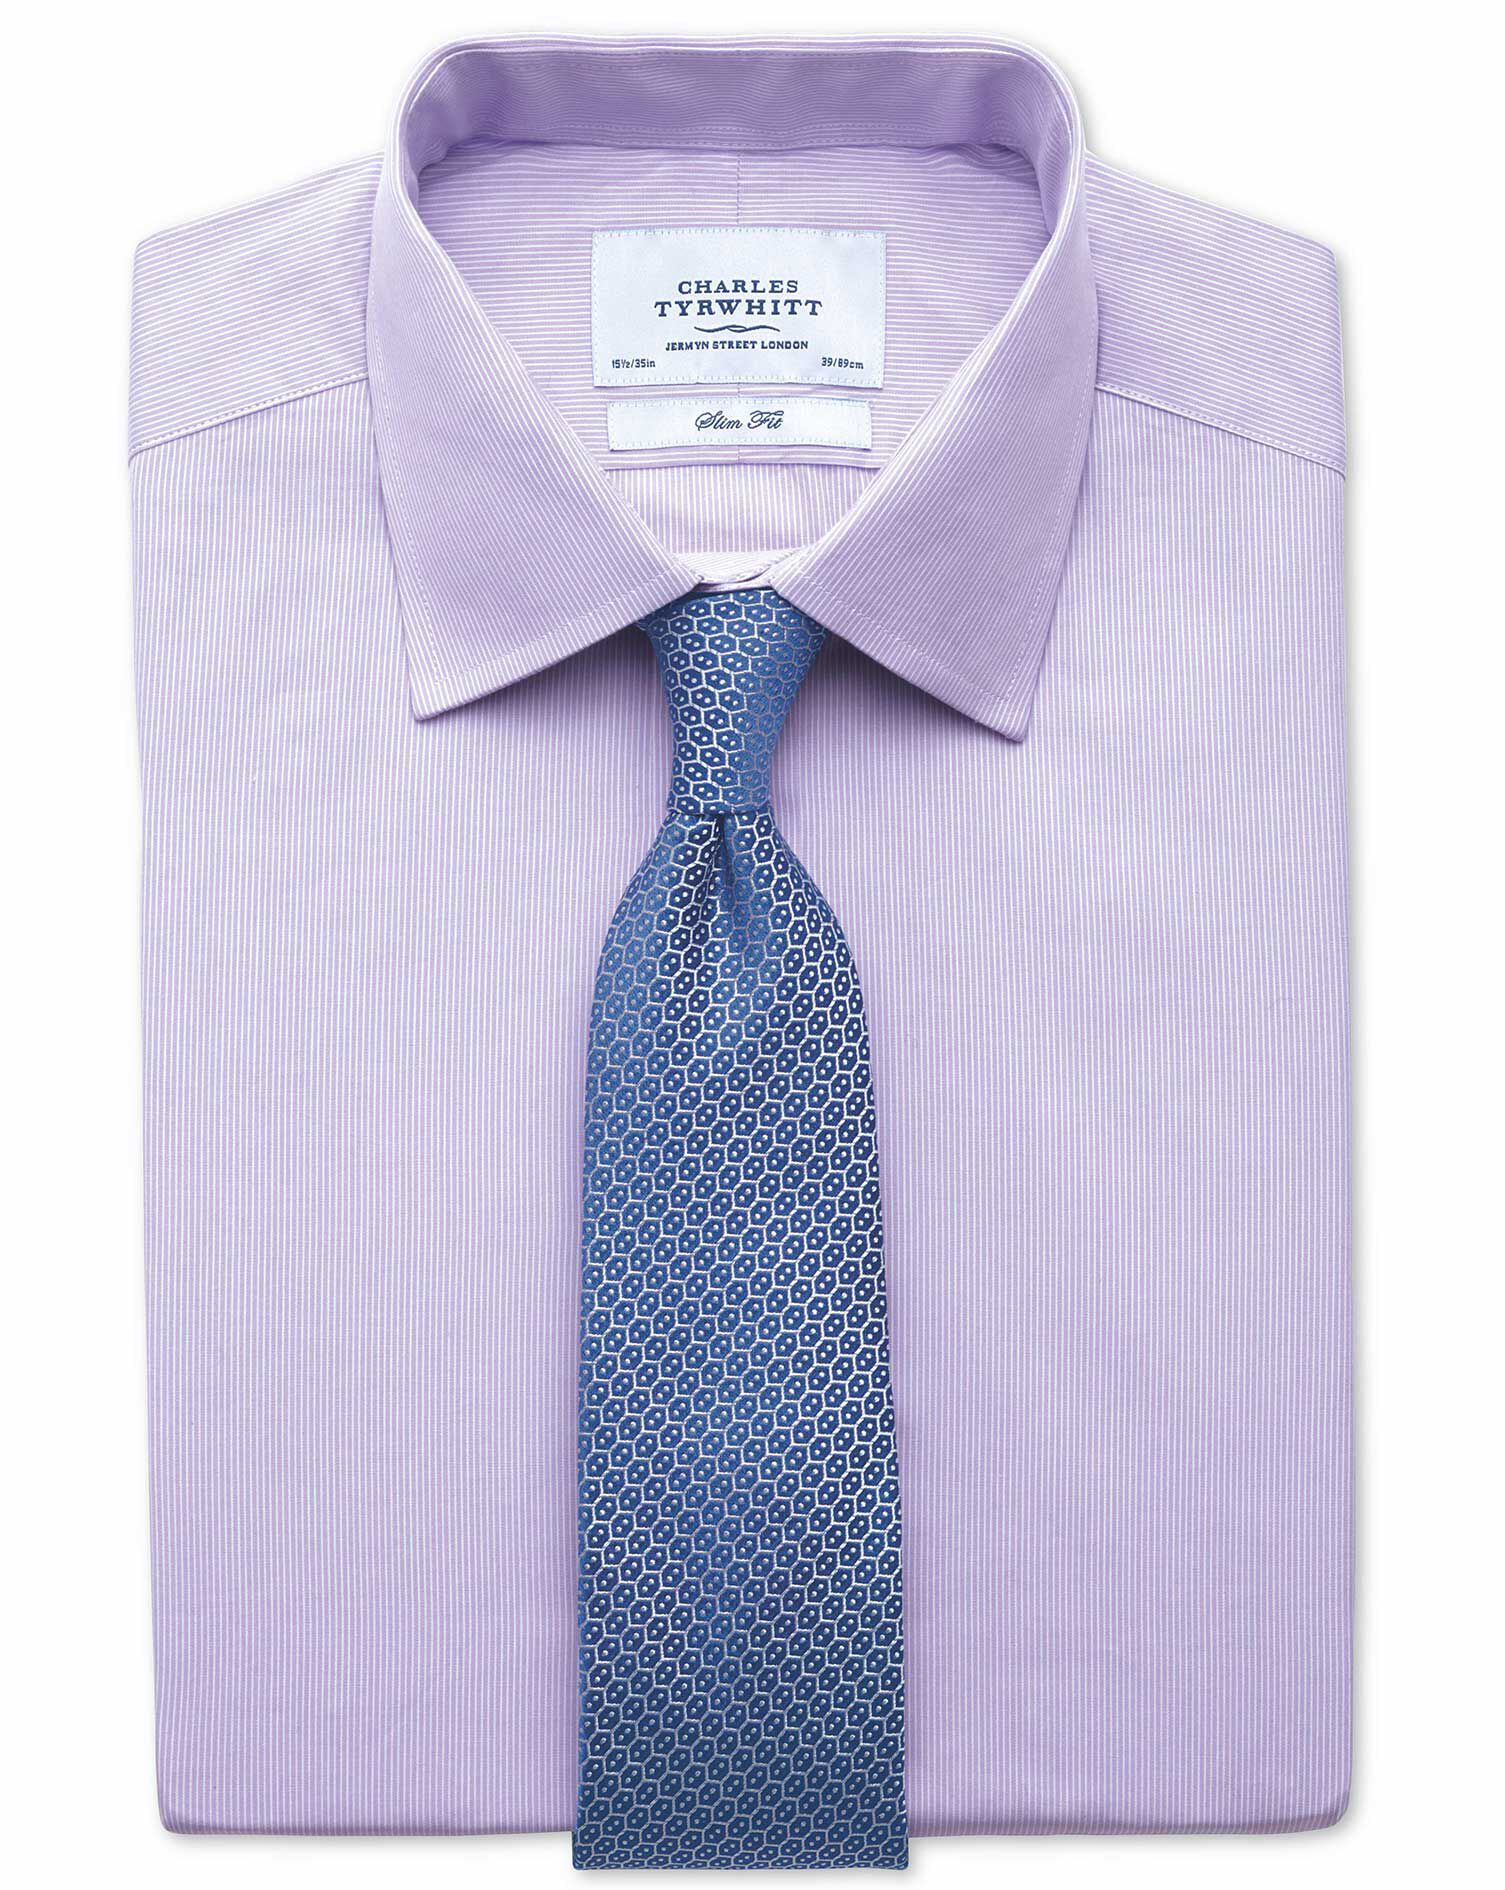 Extra Slim Fit Fine Stripe Lilac Cotton Formal Shirt Double Cuff Size 15.5/33 by Charles Tyrwhitt